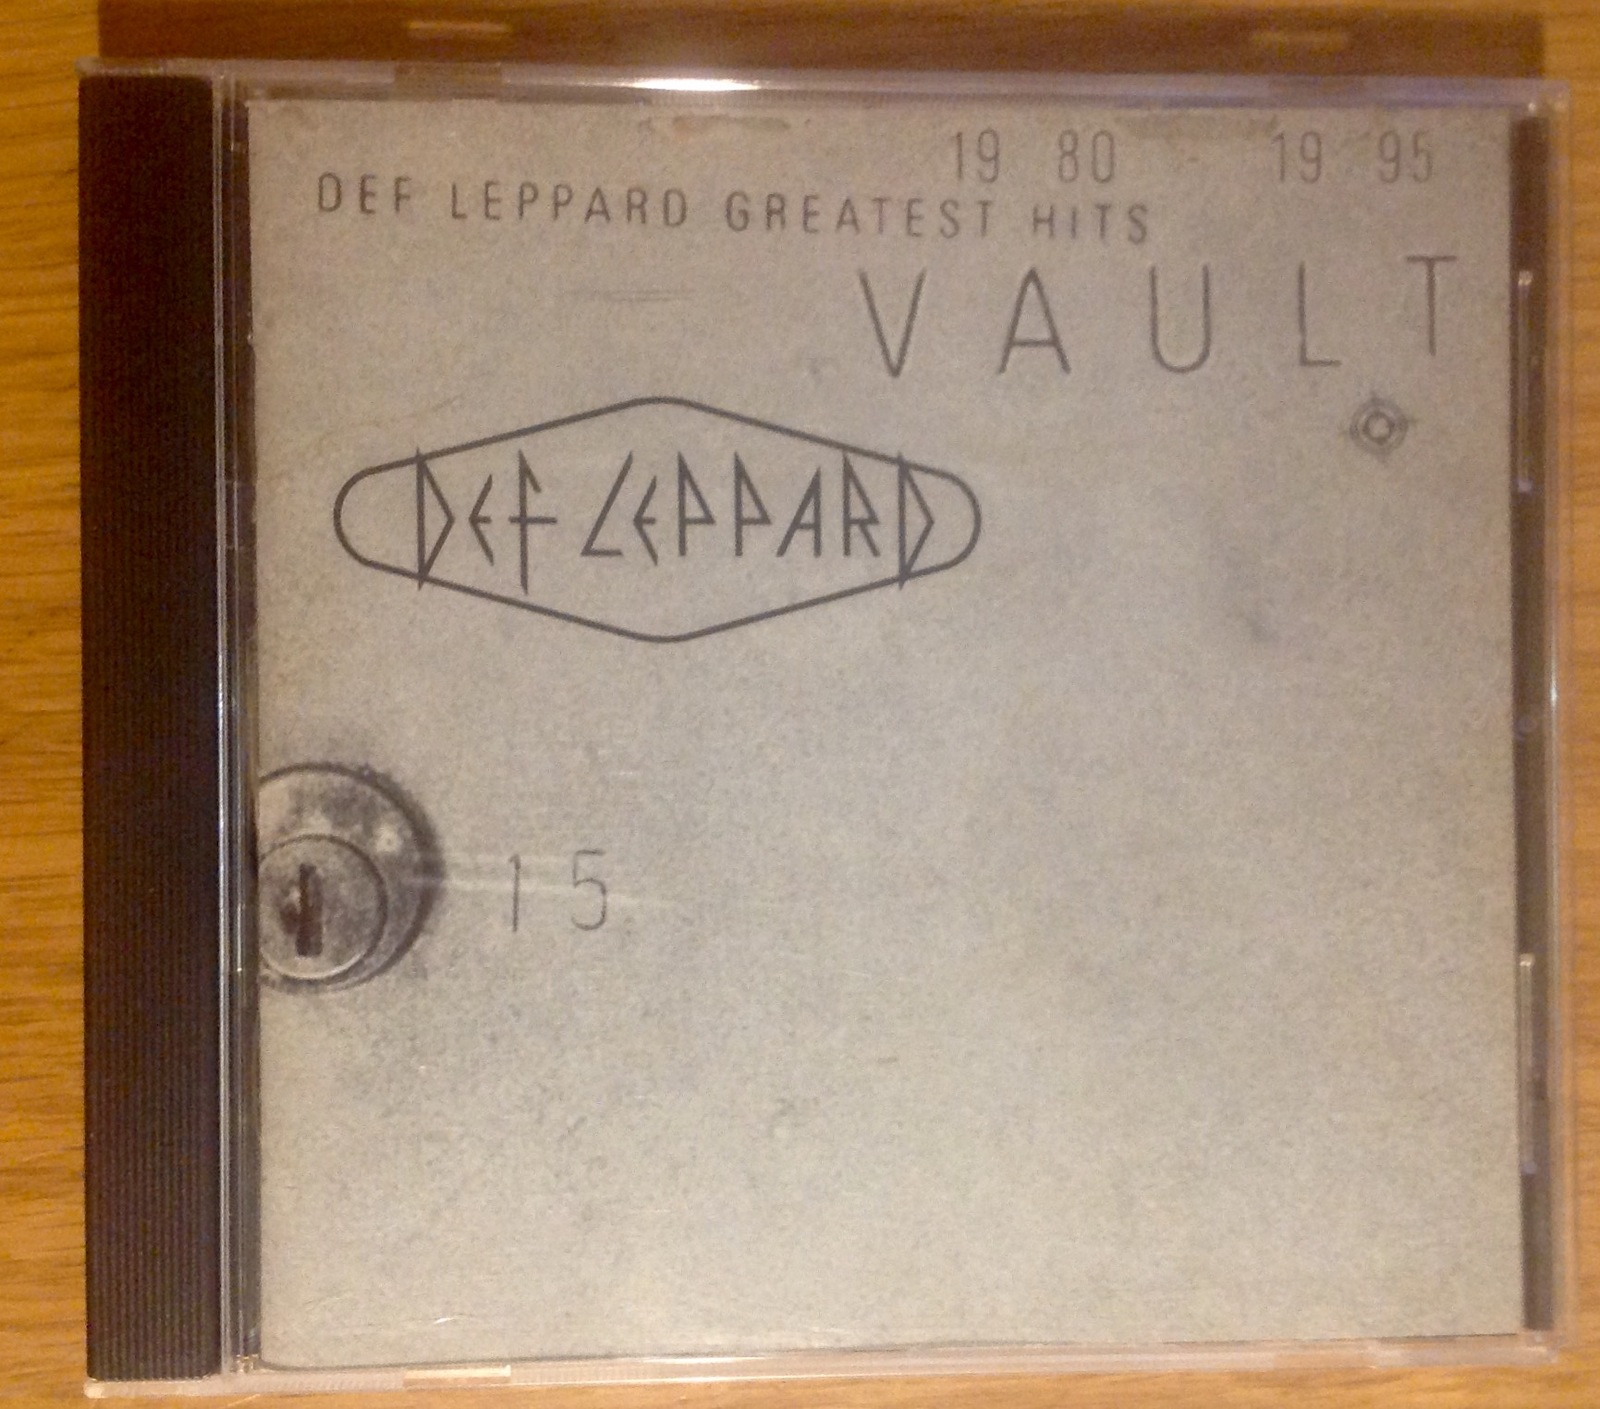 Primary image for Def Leppard Greatest Hits Cd Vault 1980-1995 Mercury